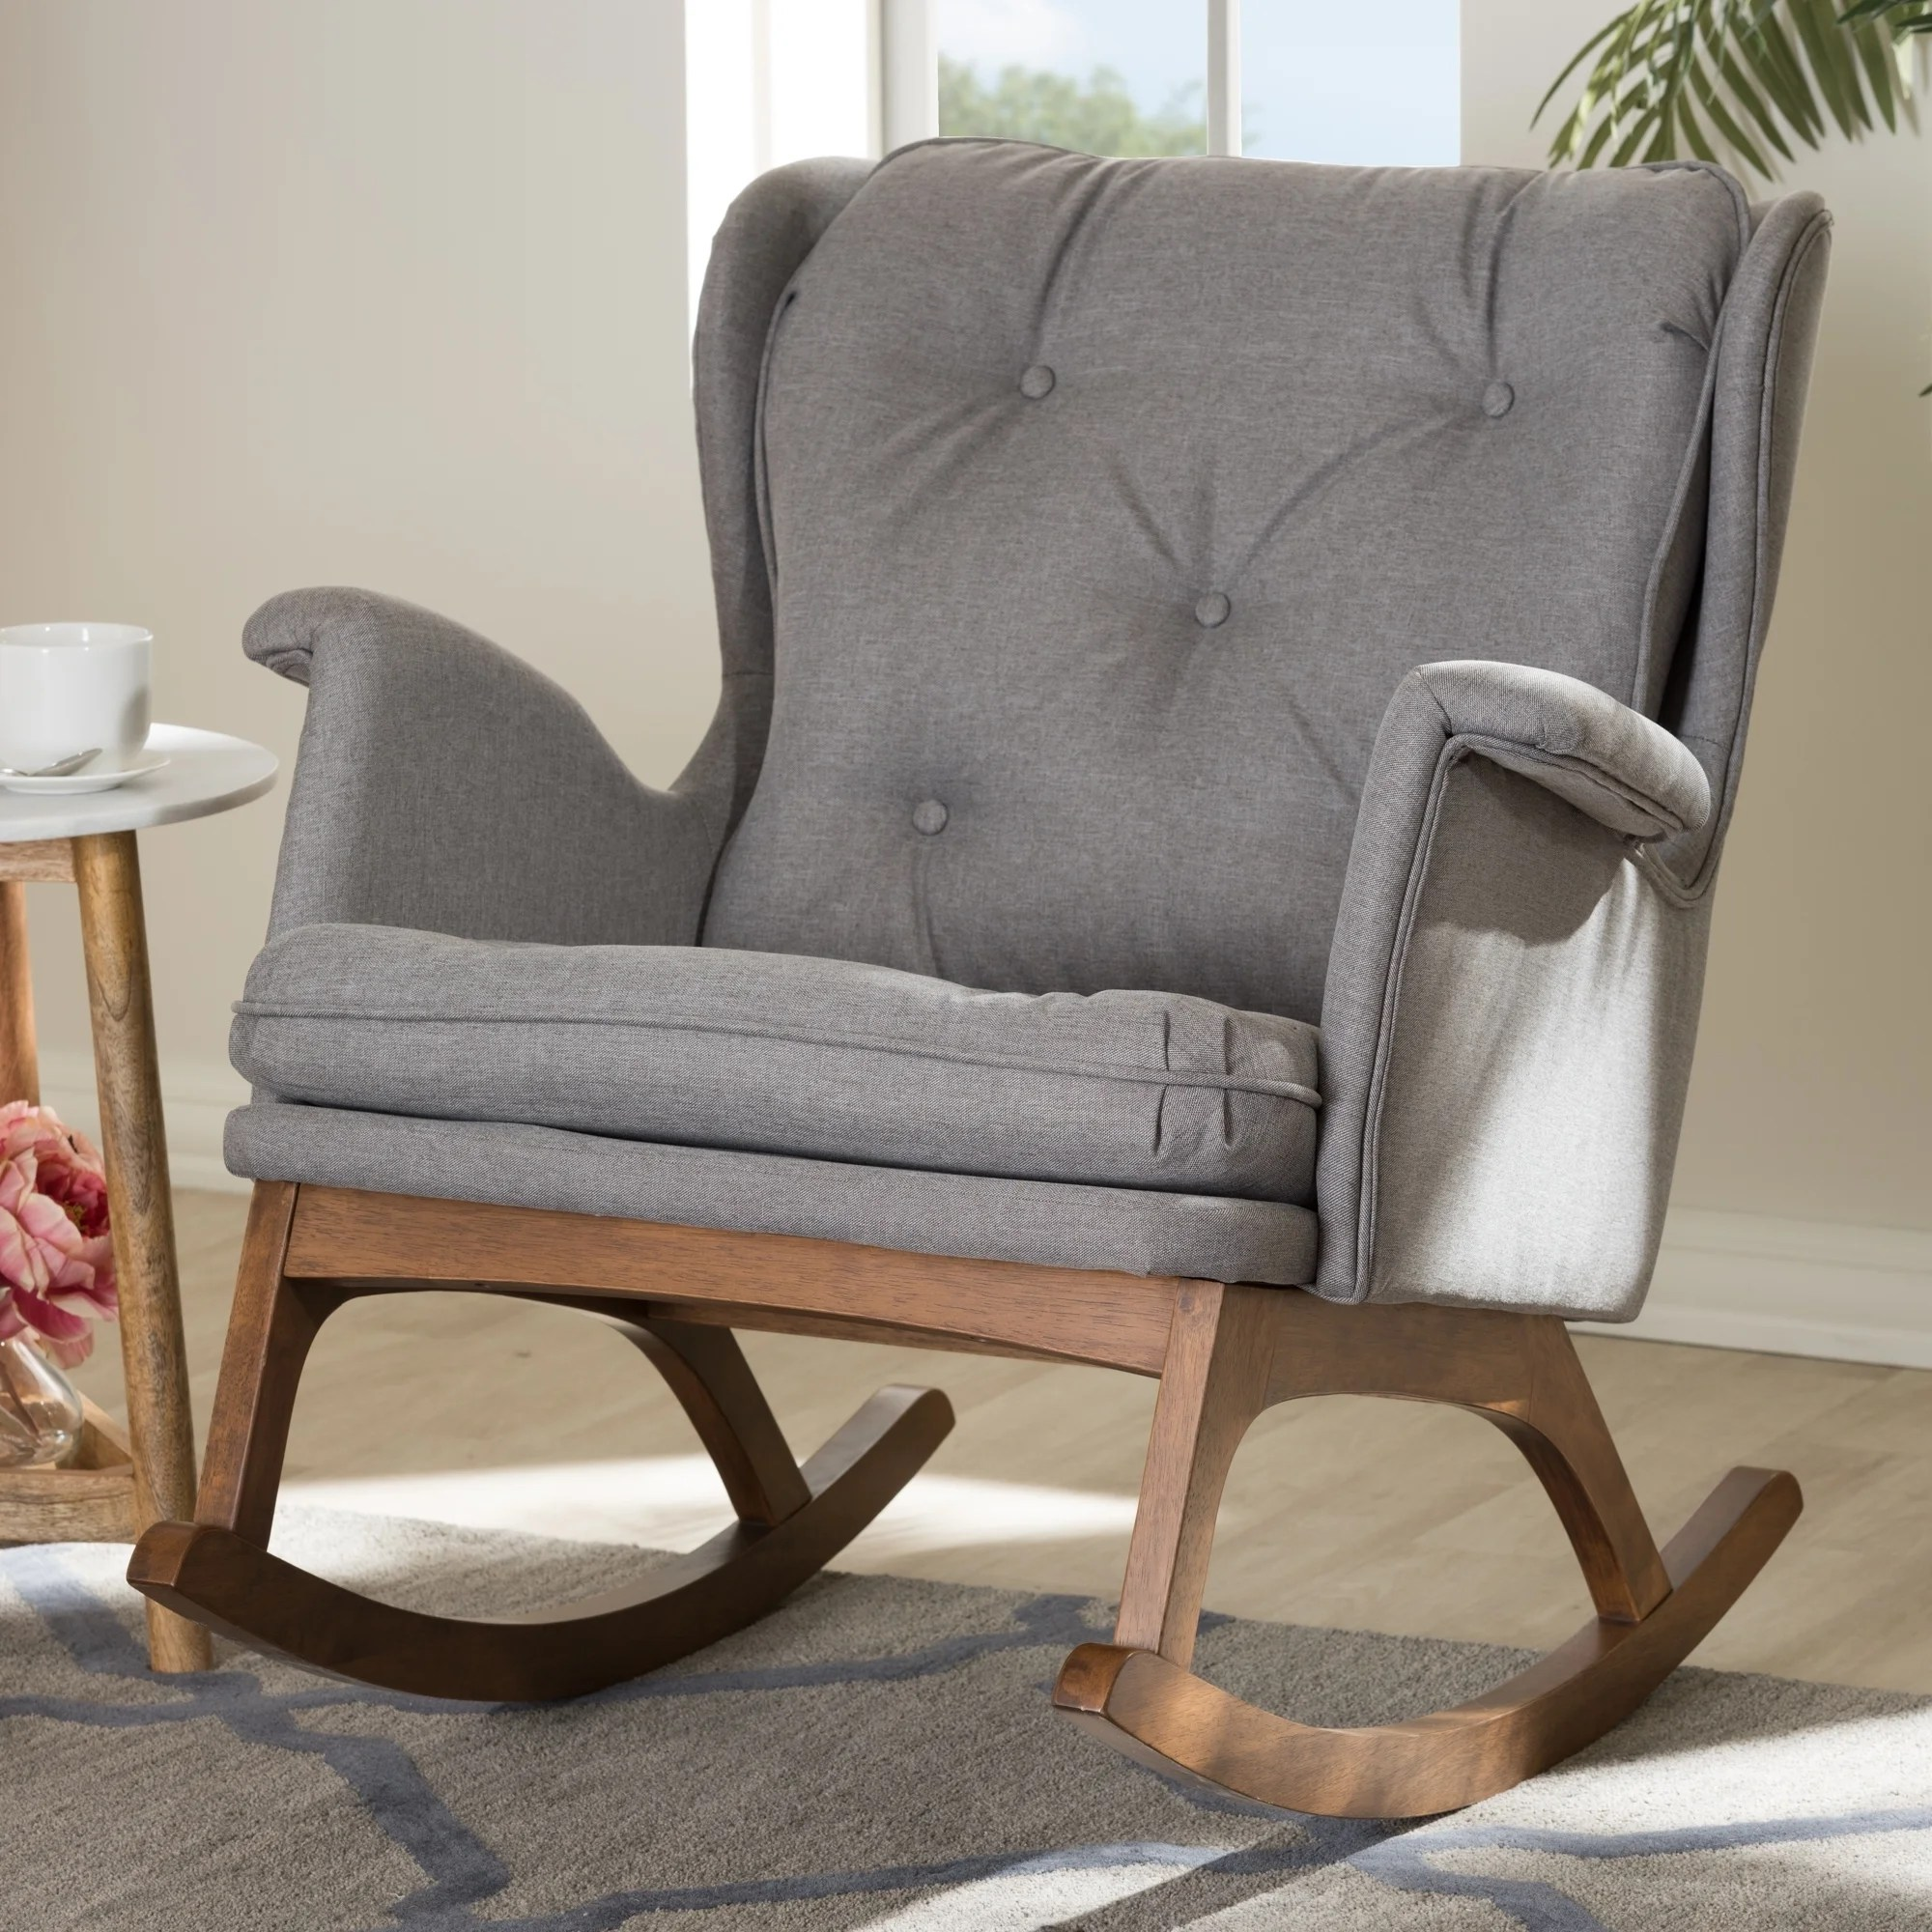 Mid Century Fabric Rocking Chair By Baxton Studio Overstock 20309022